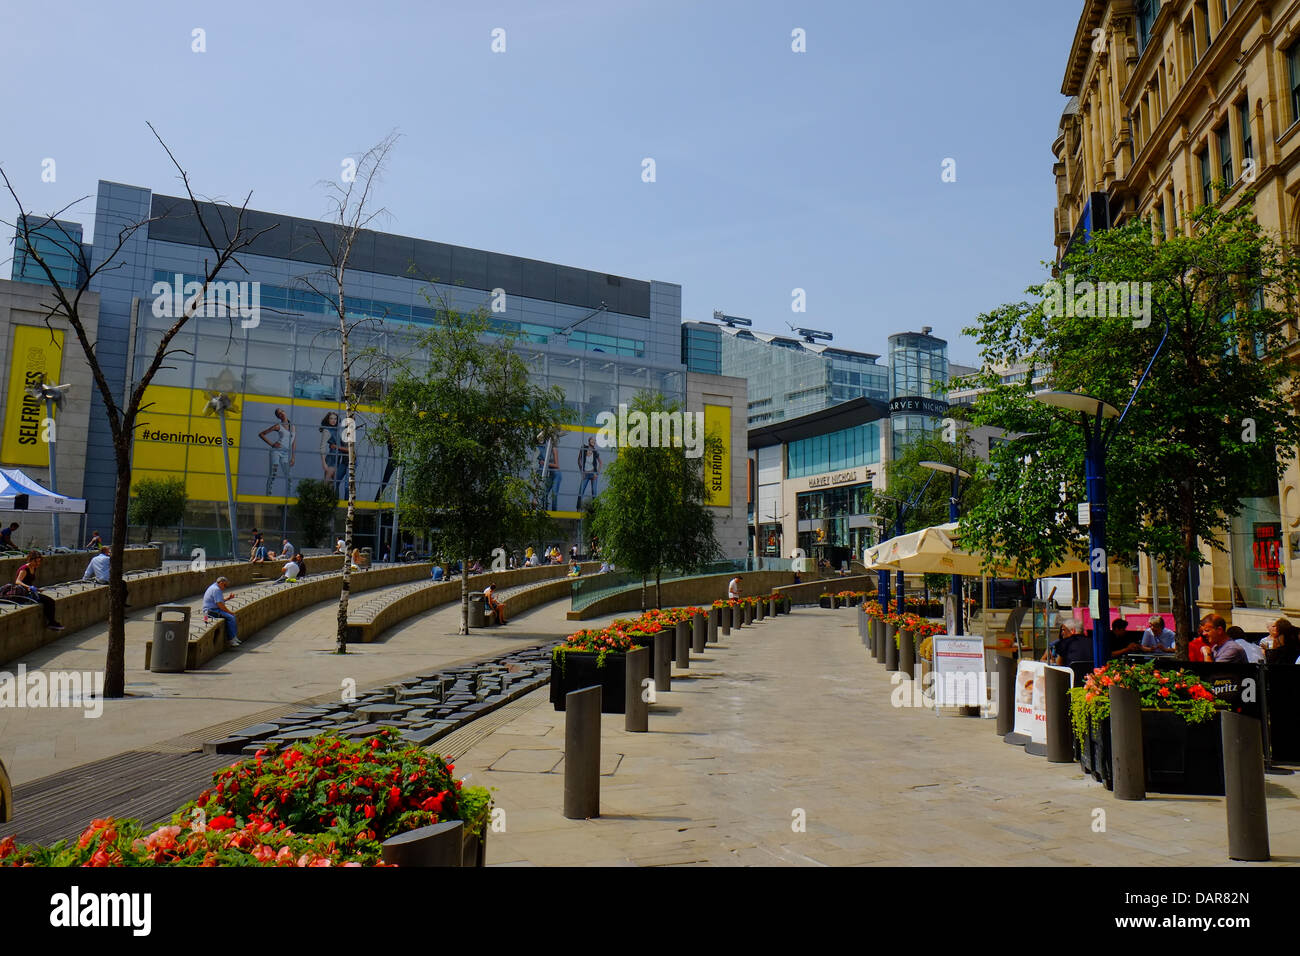 England, Manchester, The Triangle looking back towards Harvey Nichols and Selfridges - Stock Image